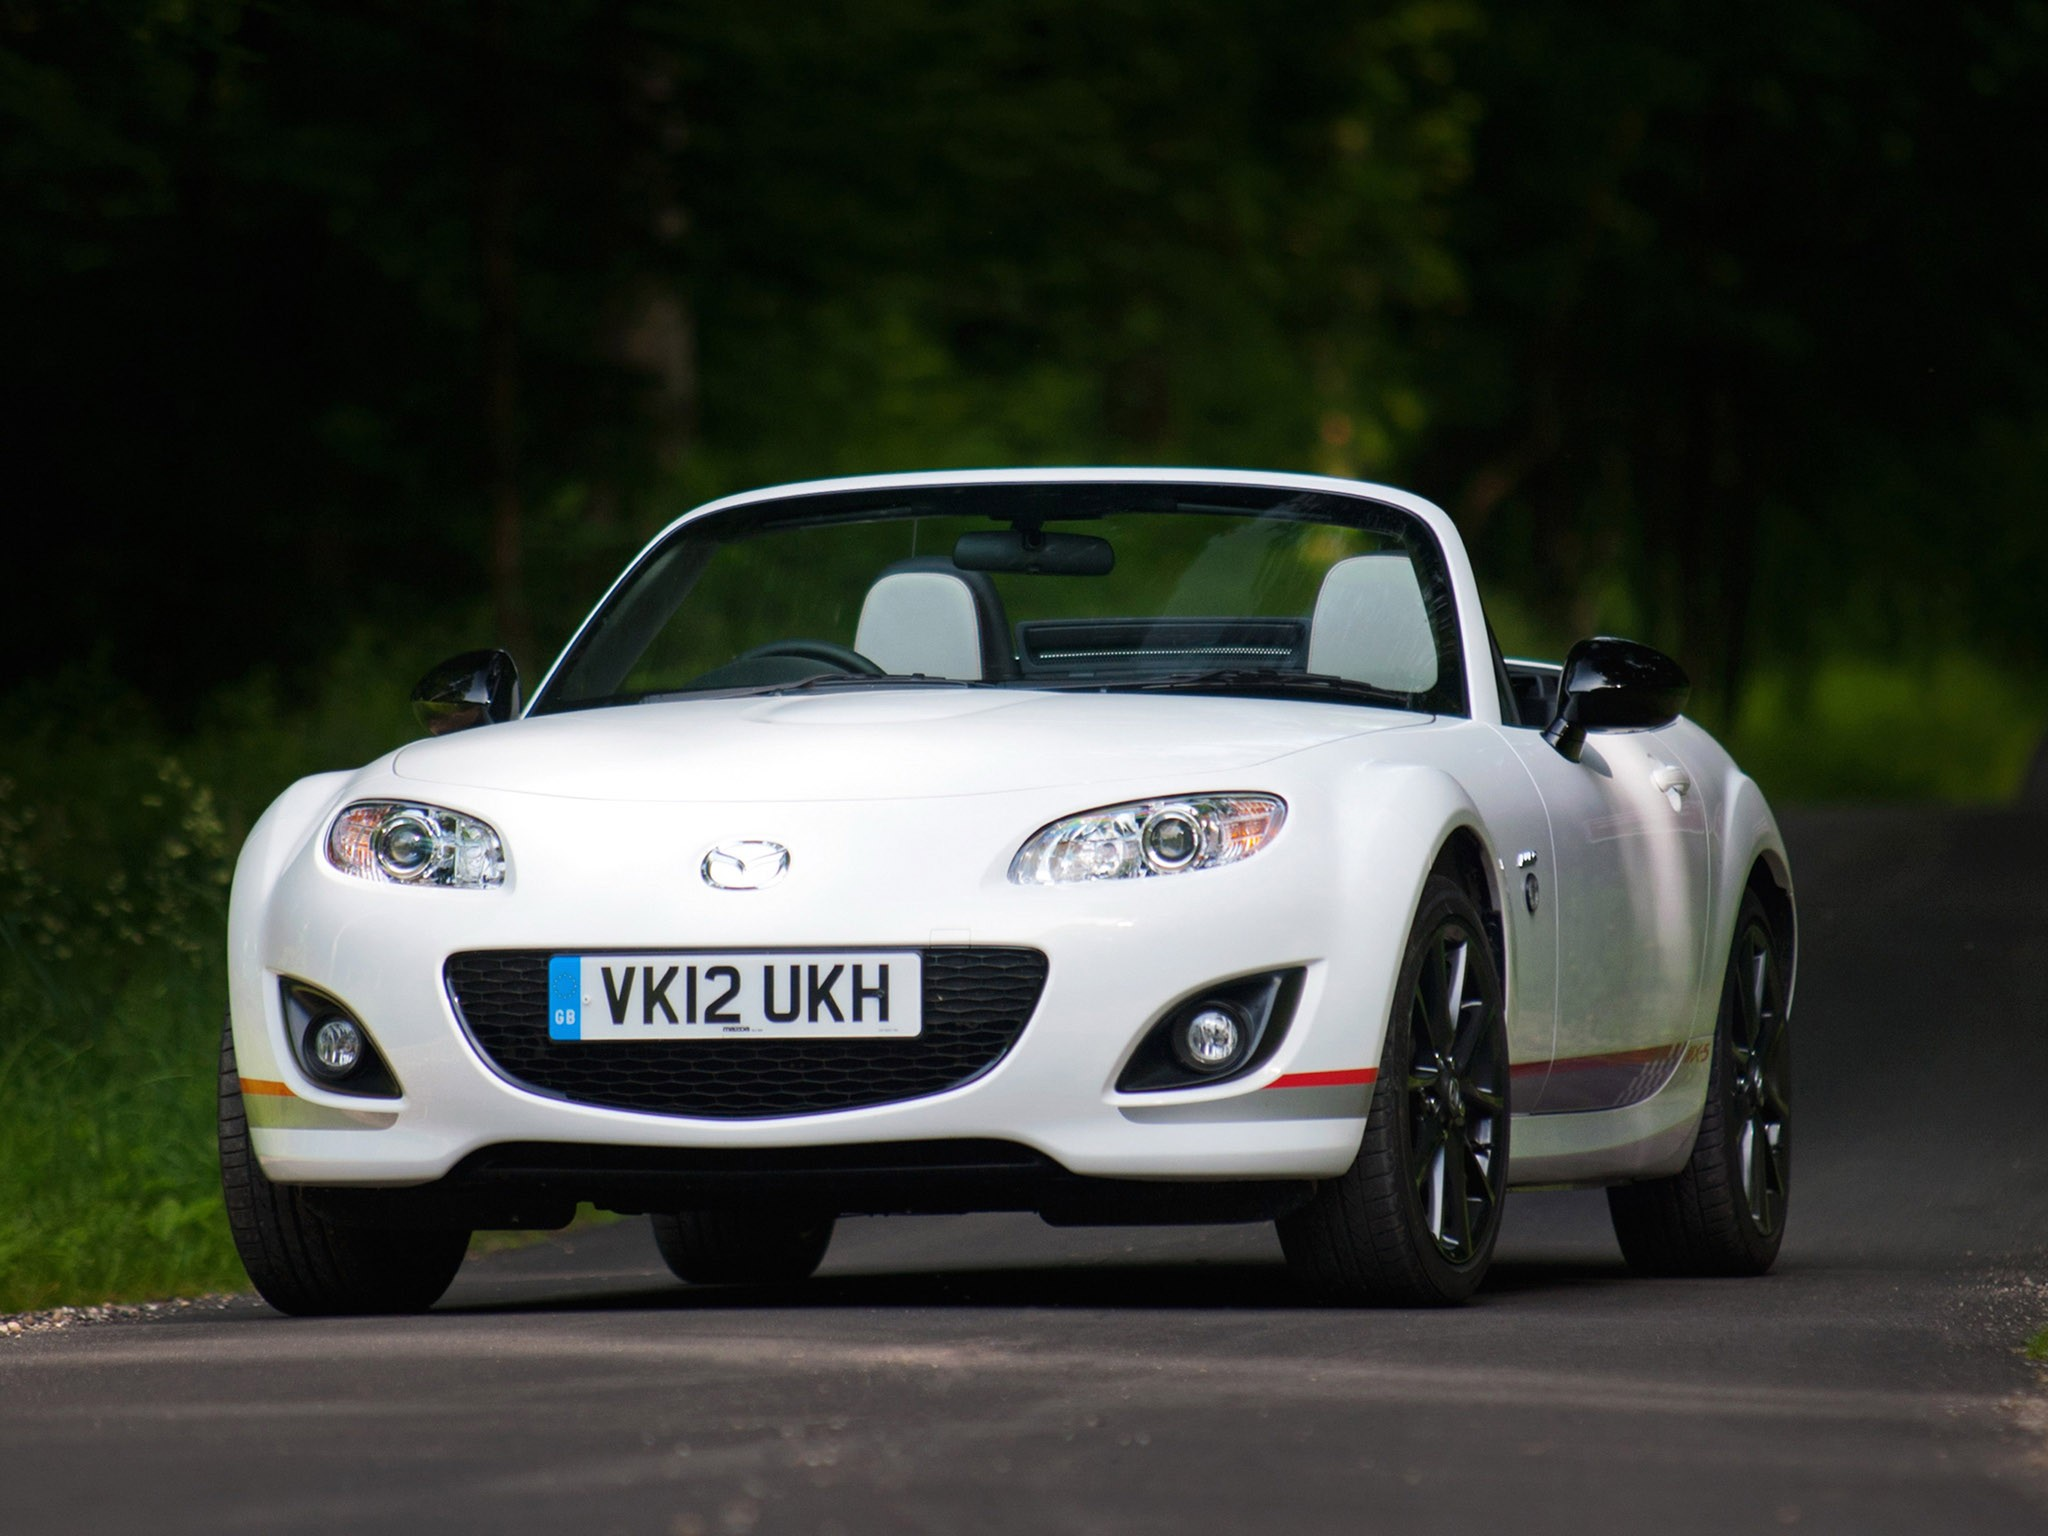 2012 Mazda MX5 Roadster Coupe Kuro NC UK